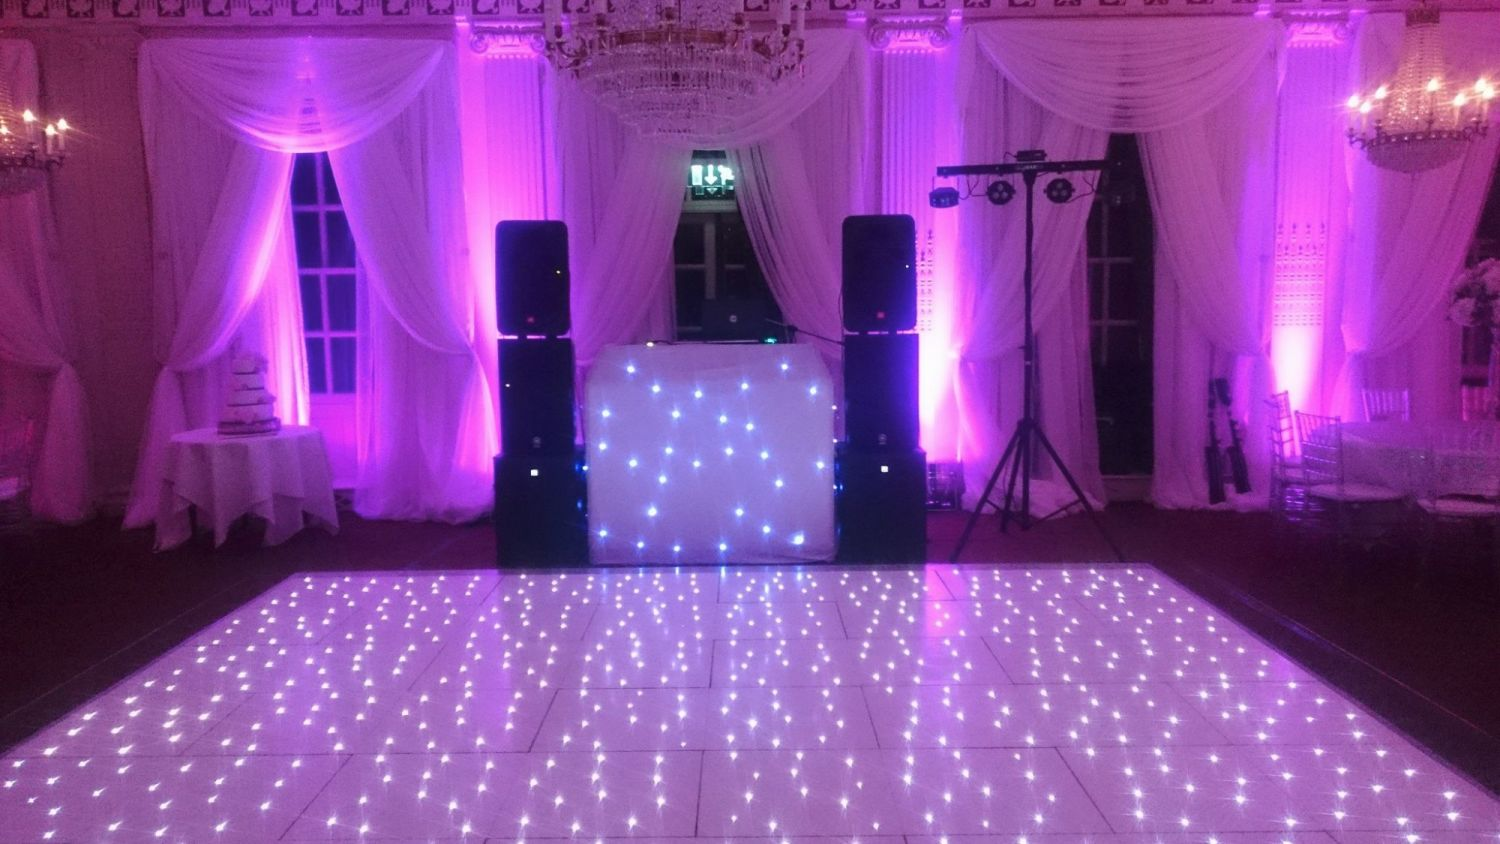 show with white sparkly floor